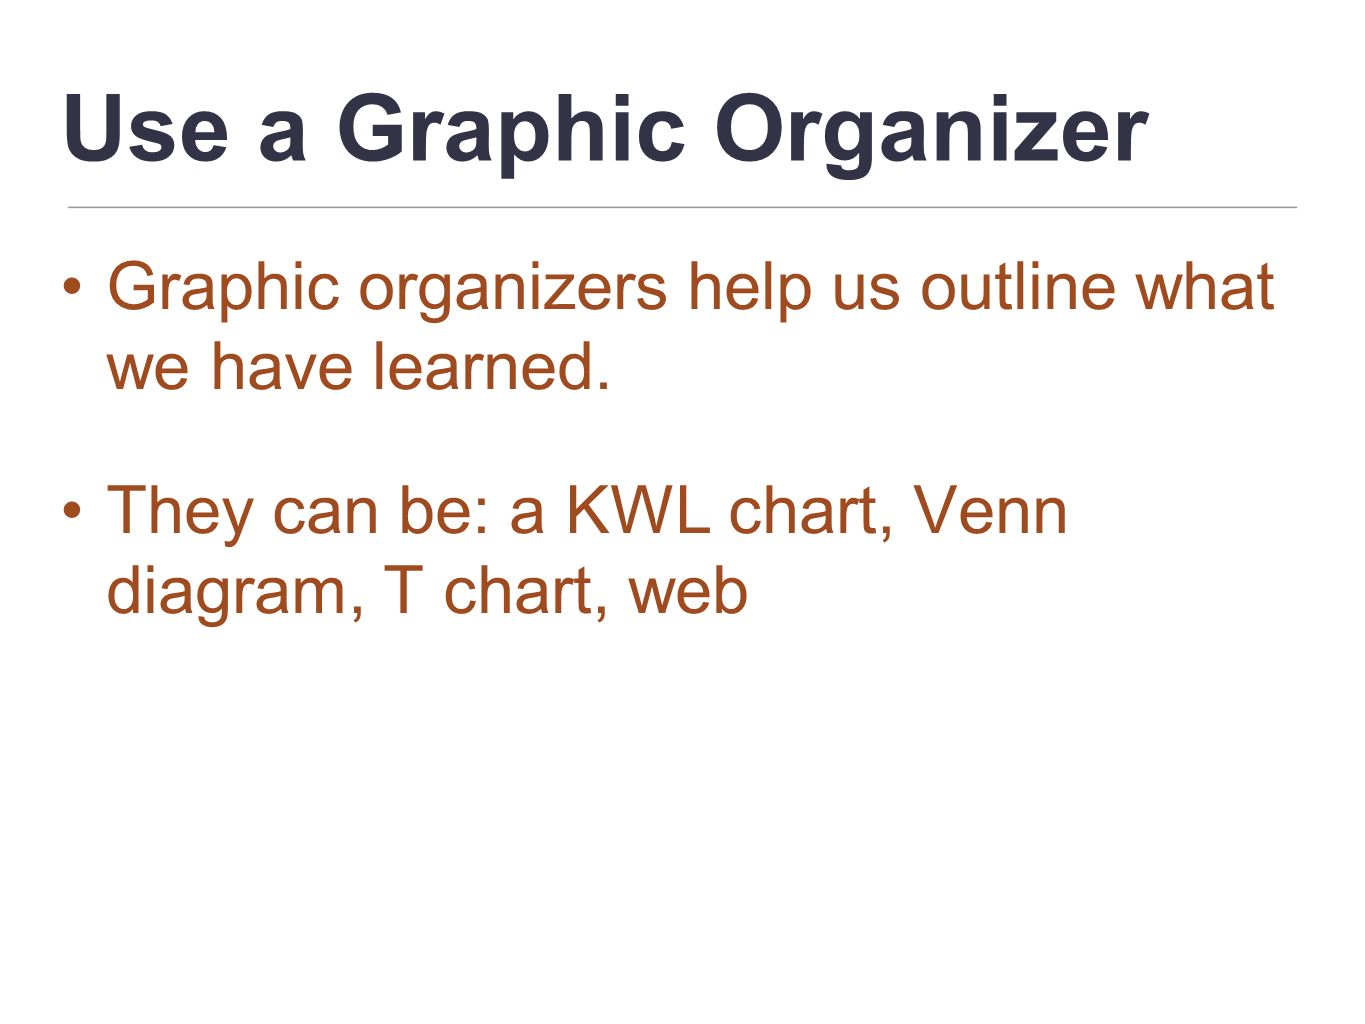 Use a Graphic Organizer Graphic organizers help us outline what we have learned. They can be: a KWL chart, Venn diagram, T chart, web